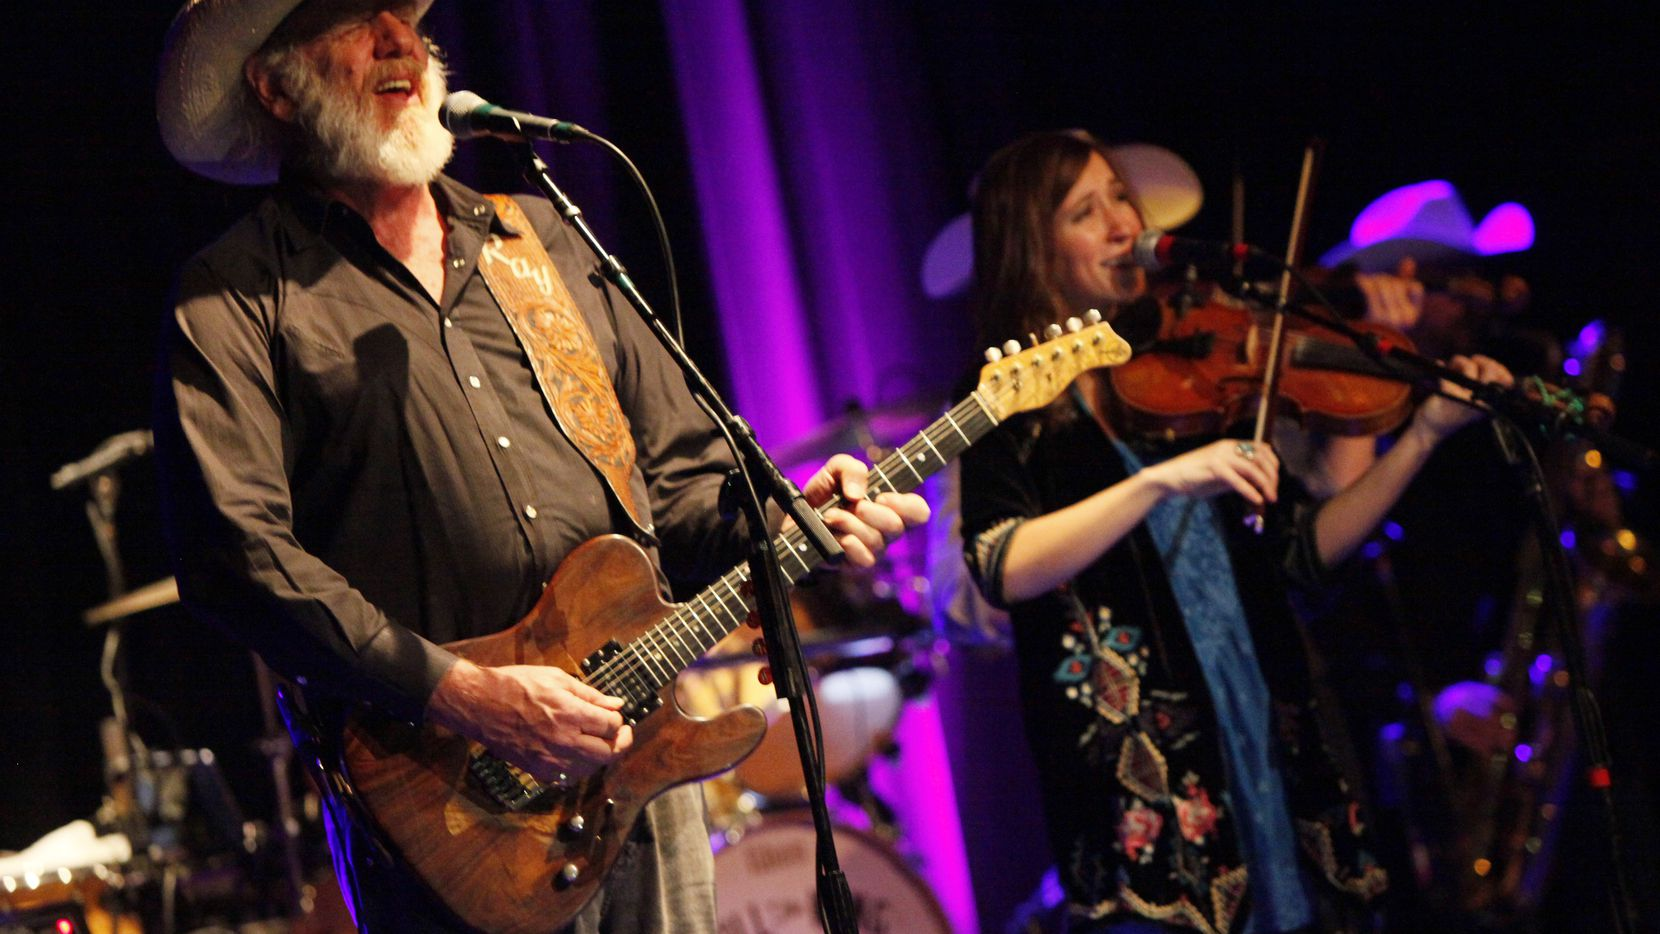 Vocalist and guitarist Ray Benson leads Asleep at the Wheel.